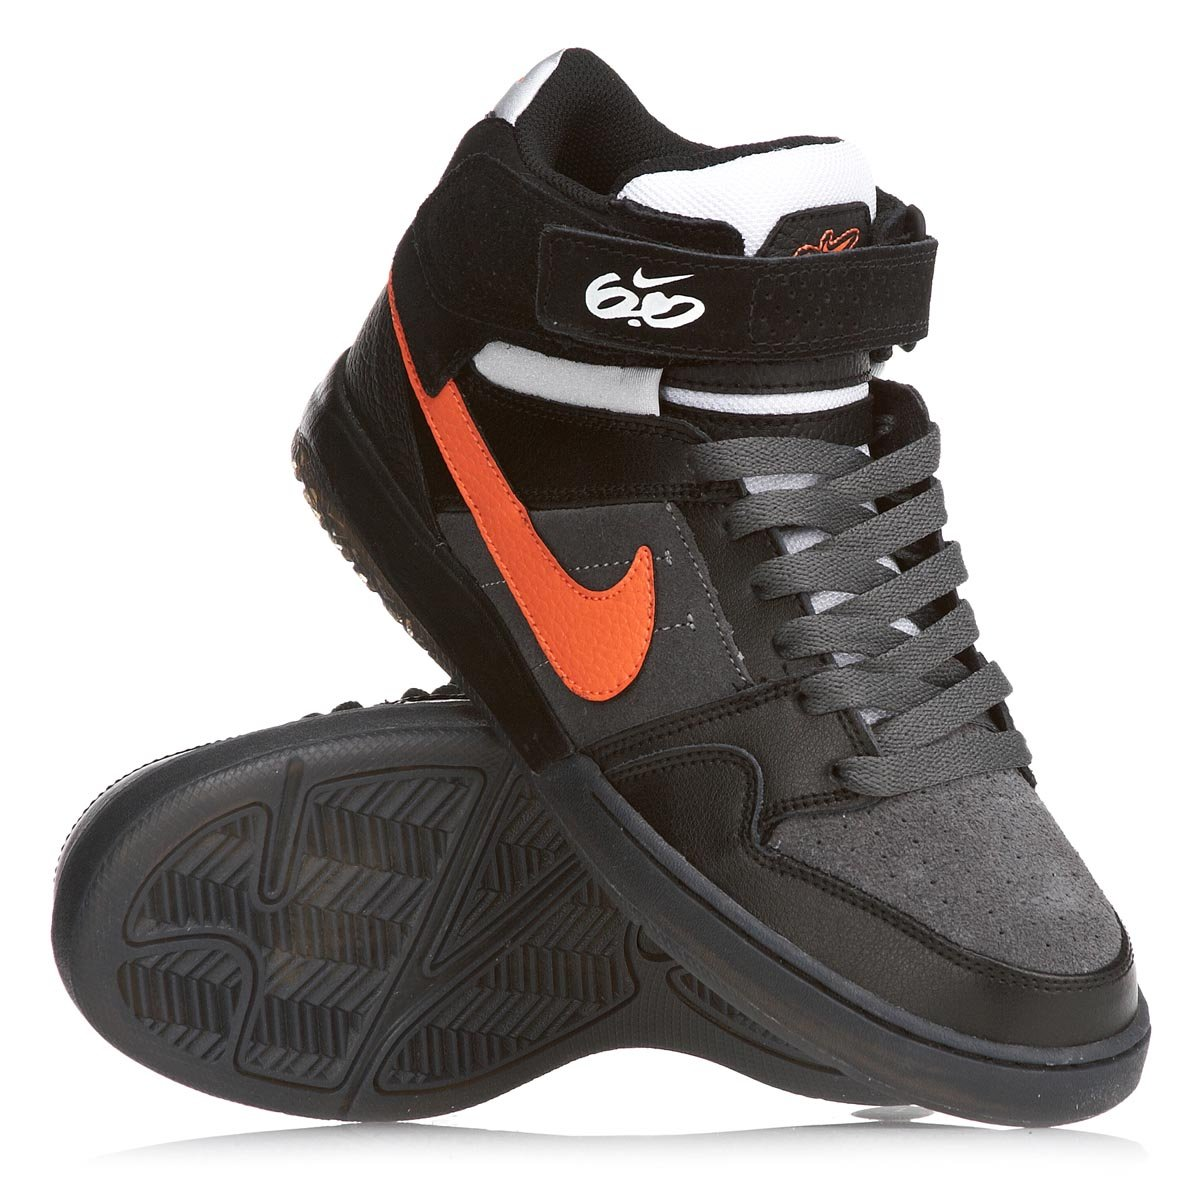 san francisco 9cbaf f0ada Nike 6.0 AIR MOGAN MID 2 Mens Shoes, black total orange dark grey, US 12,  EU 46, UK 11 Amazon.co.uk Shoes  Bags